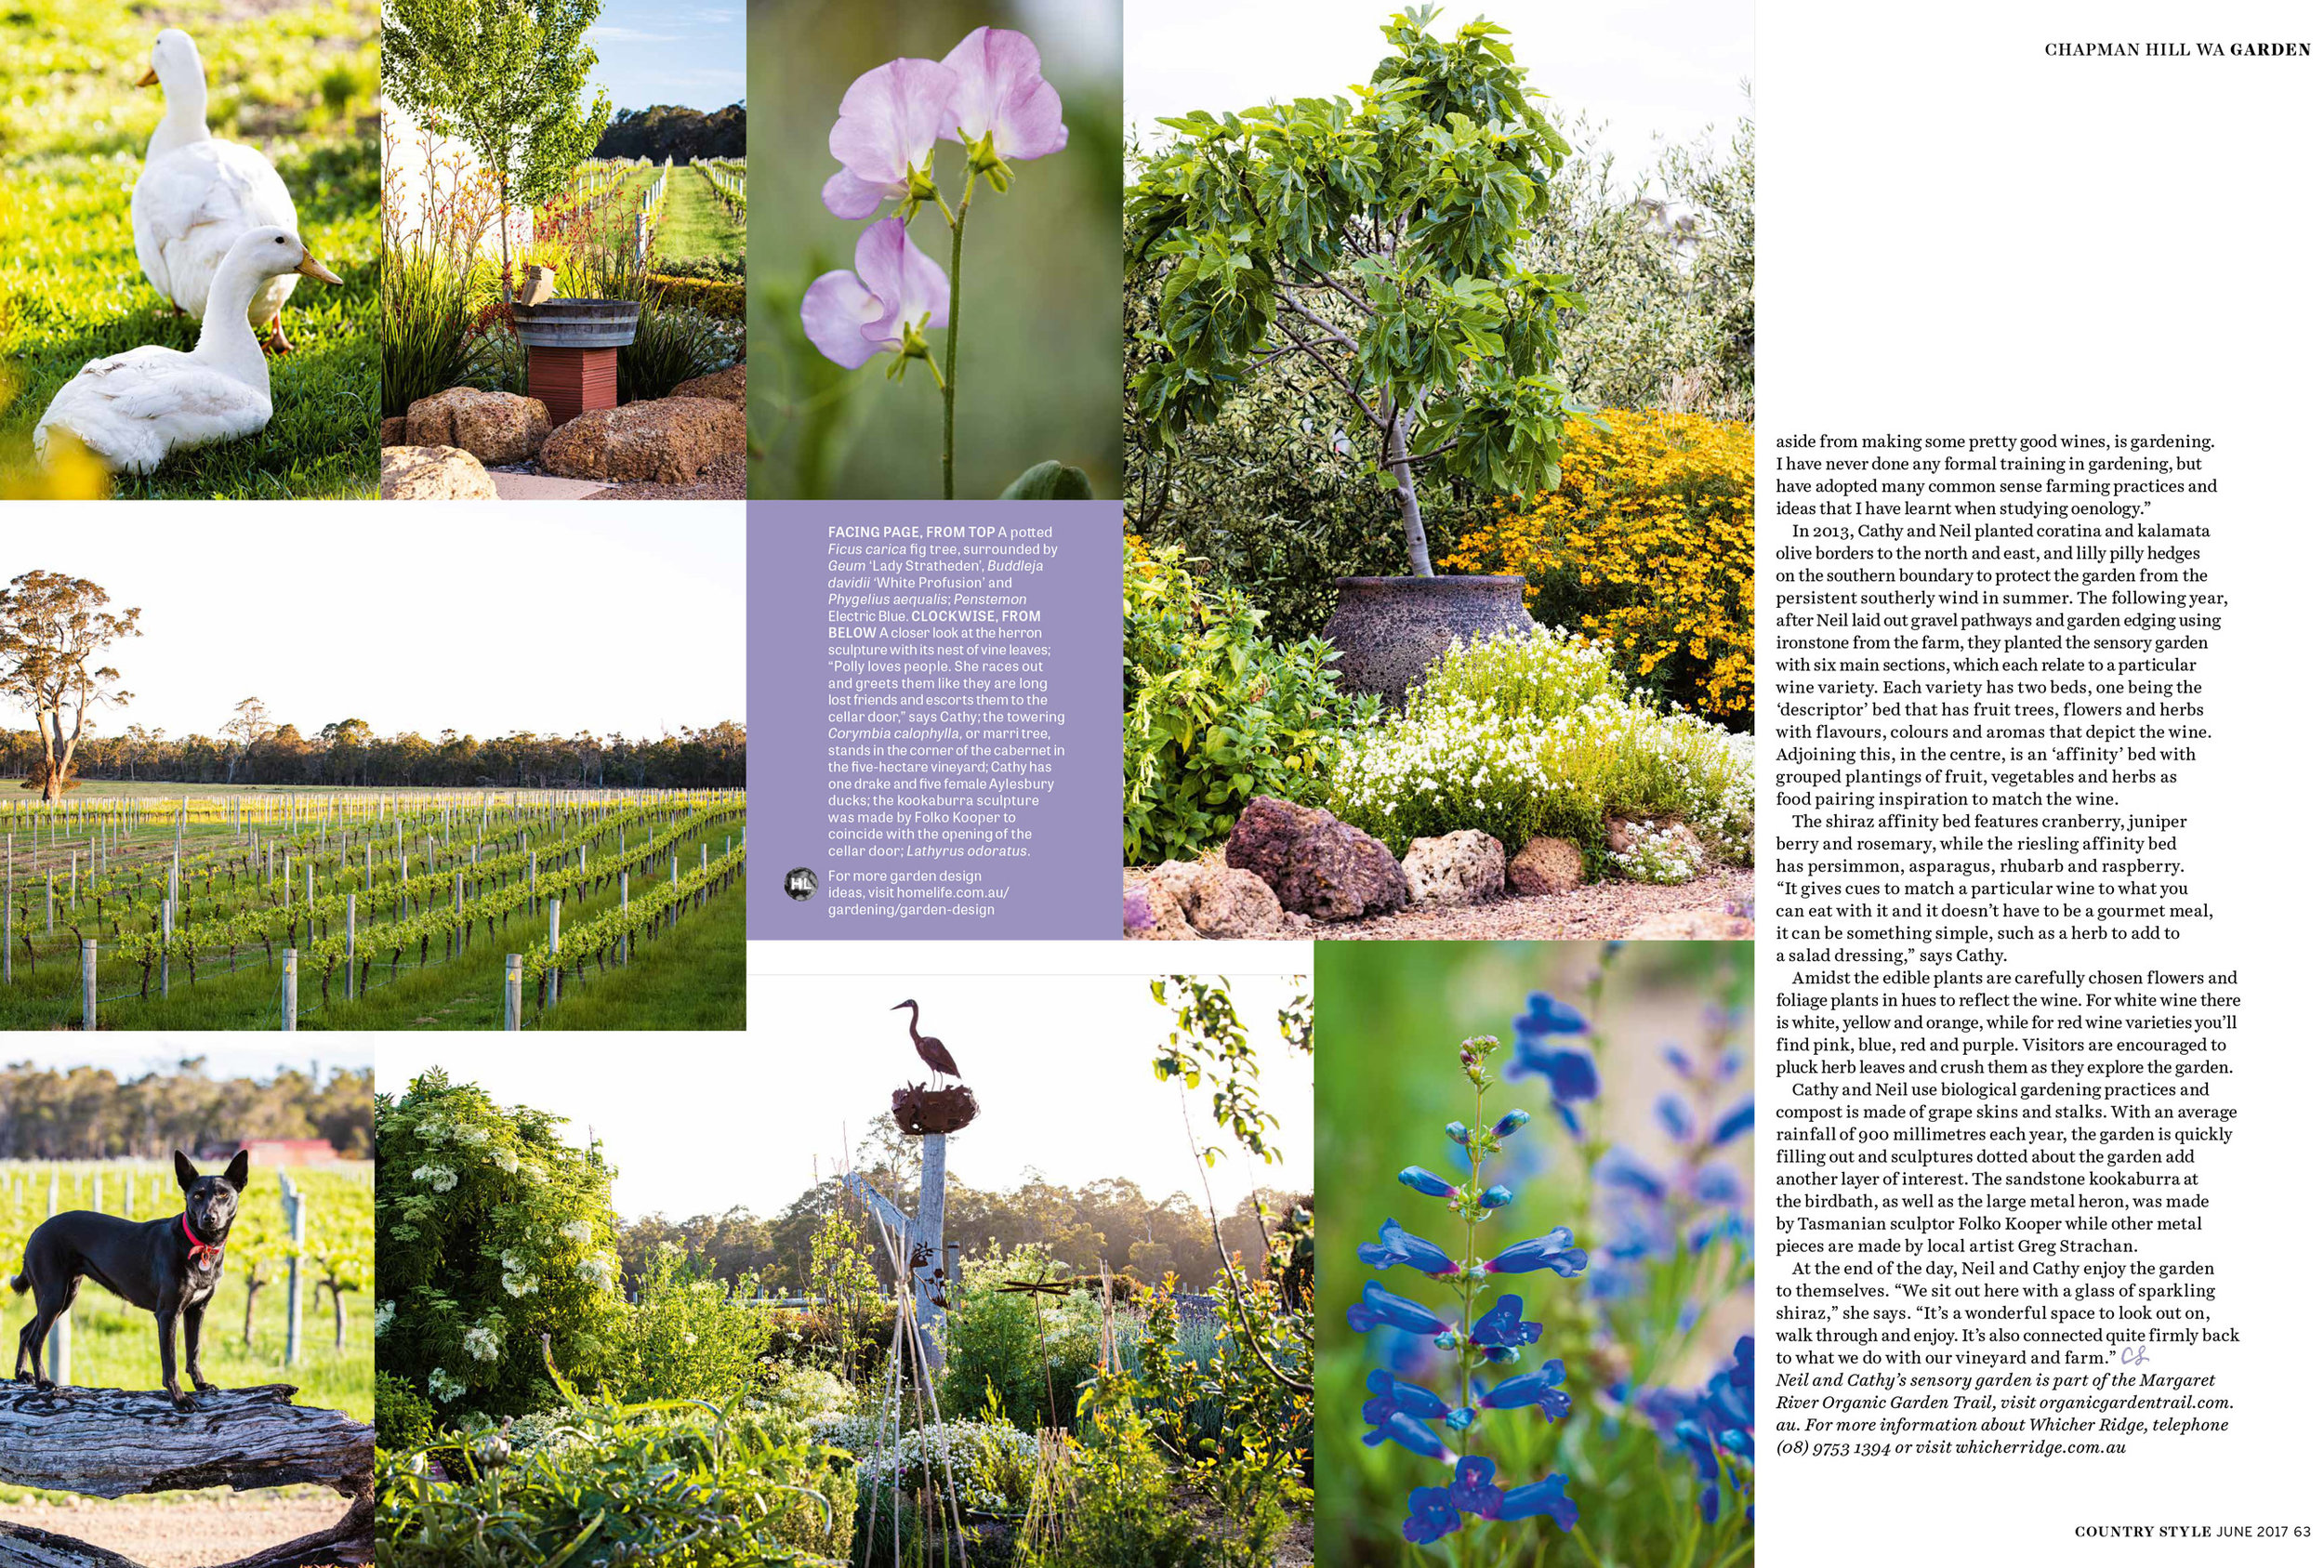 australian+country+style+june+2017+Cathy+Howard+Garden+by+claire+mactaggart+3.jpg